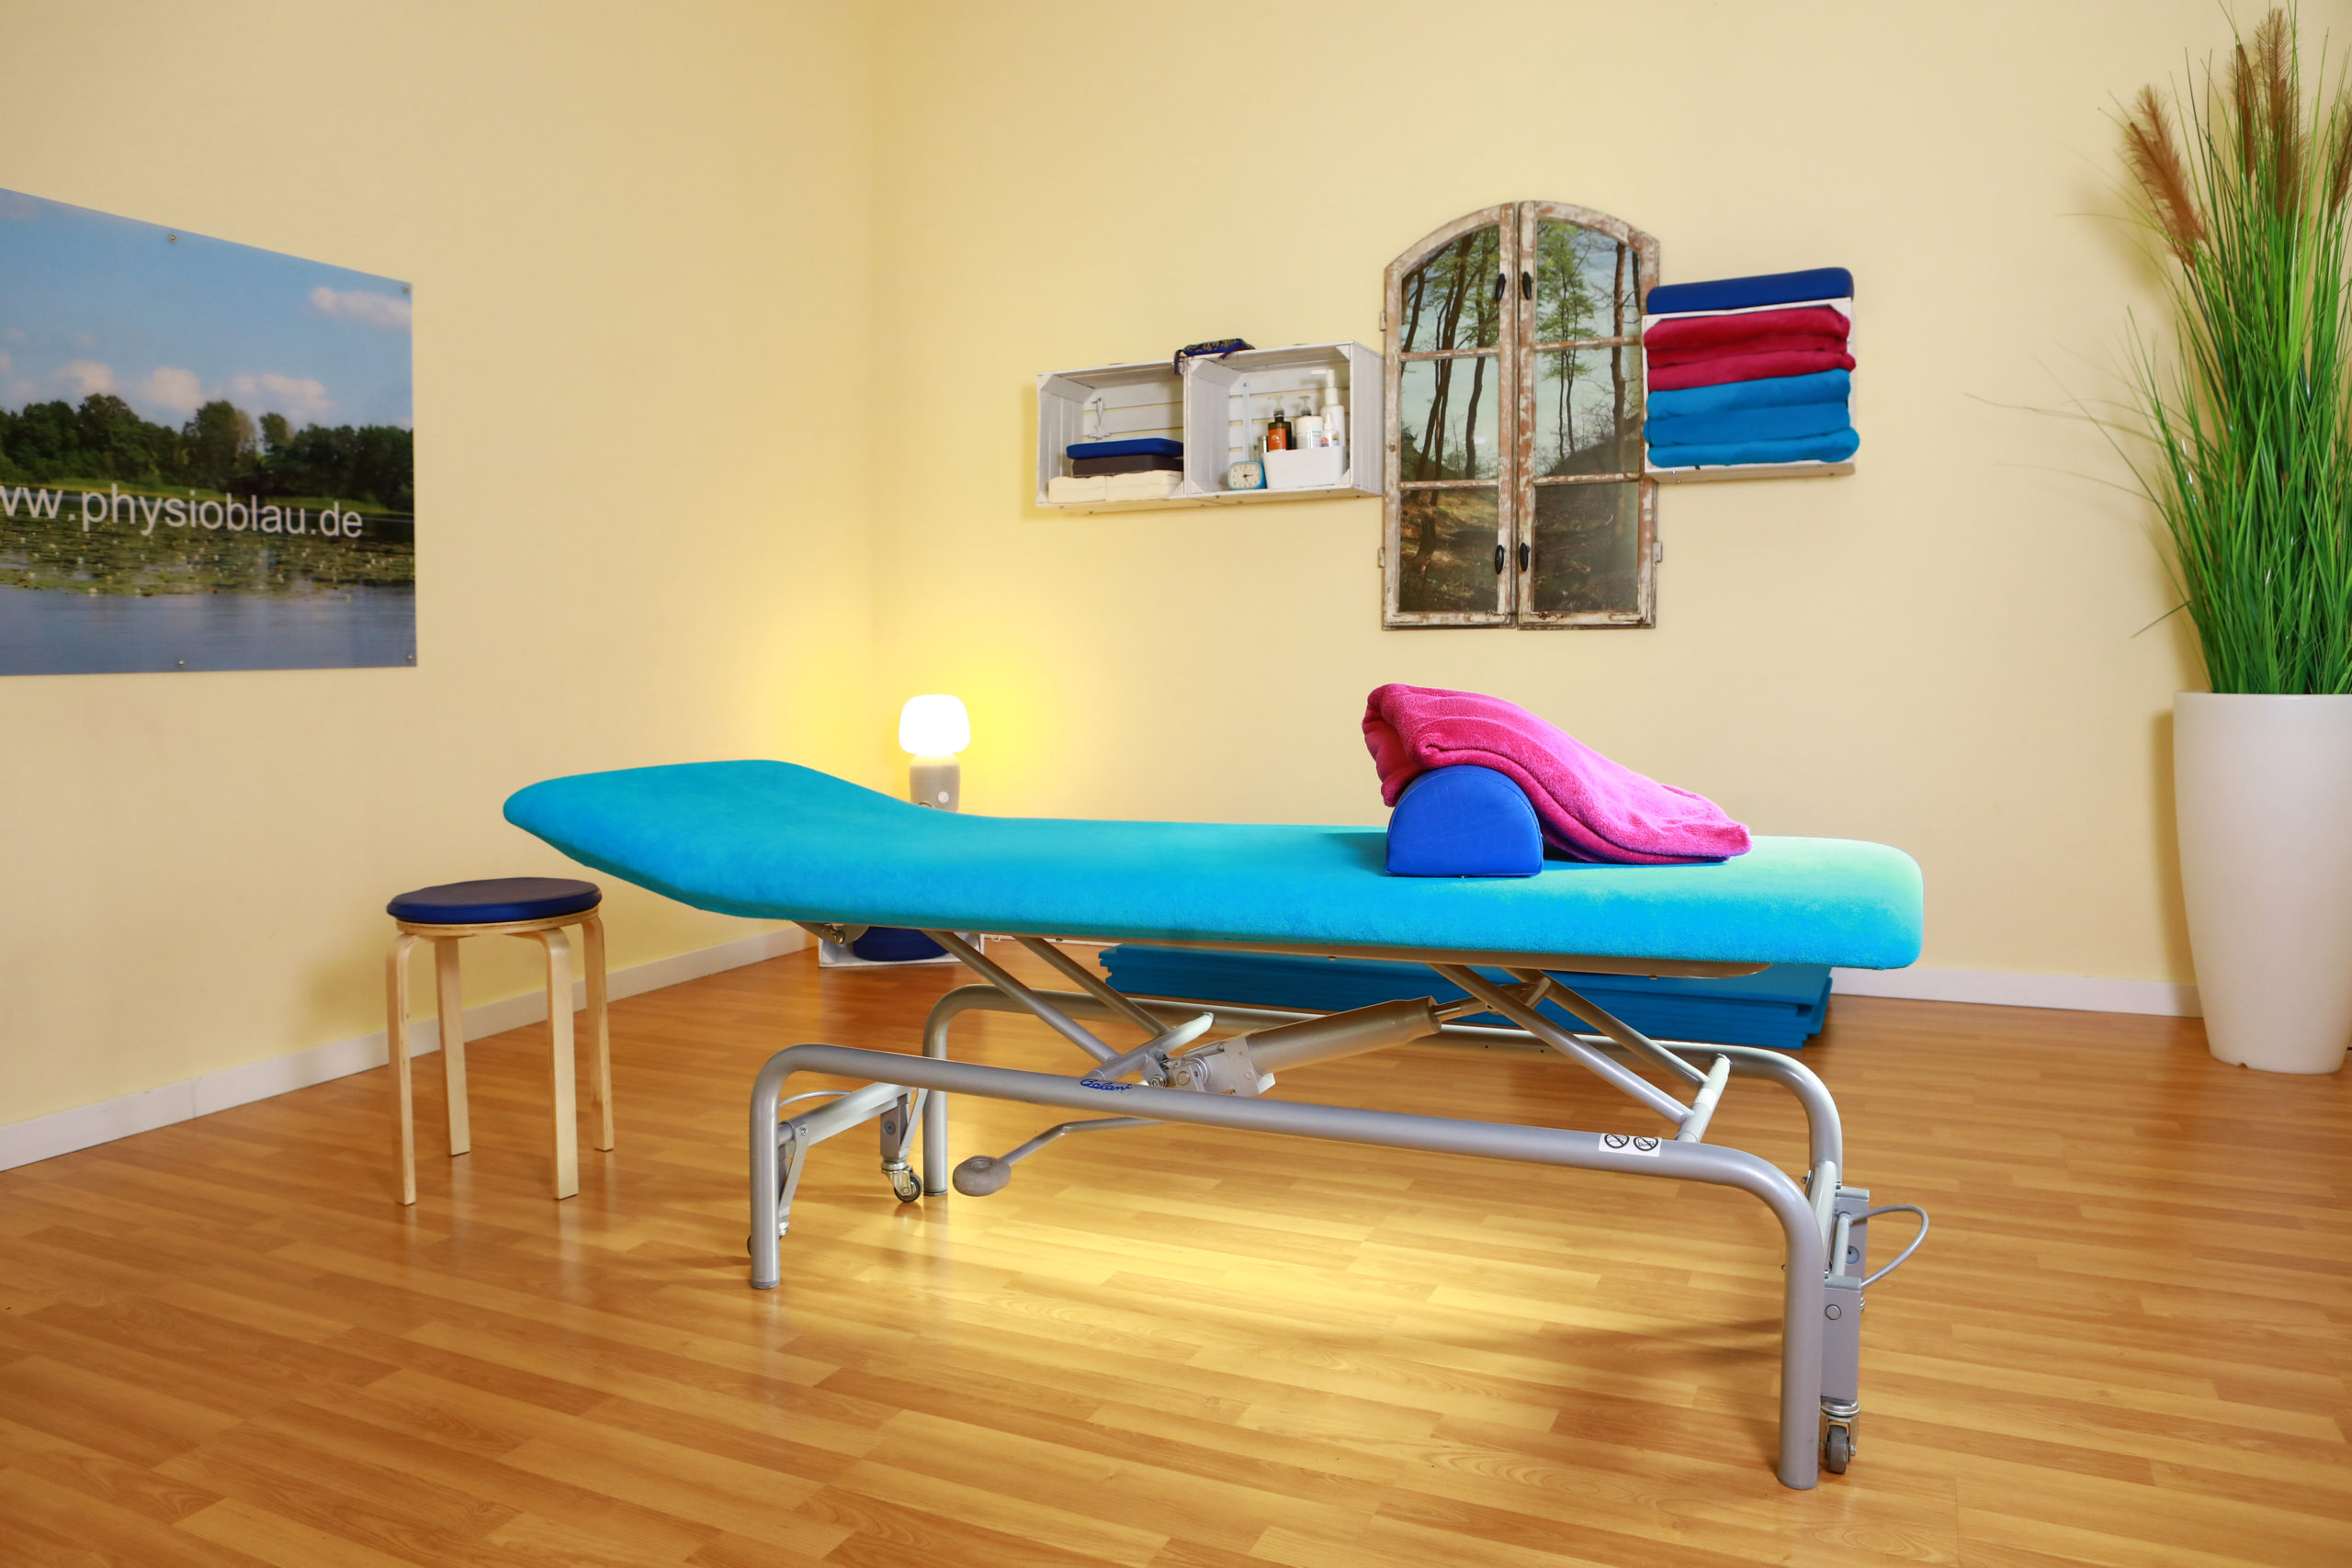 Therapieraum in unserer Physiotherapie Blau in Potsdam